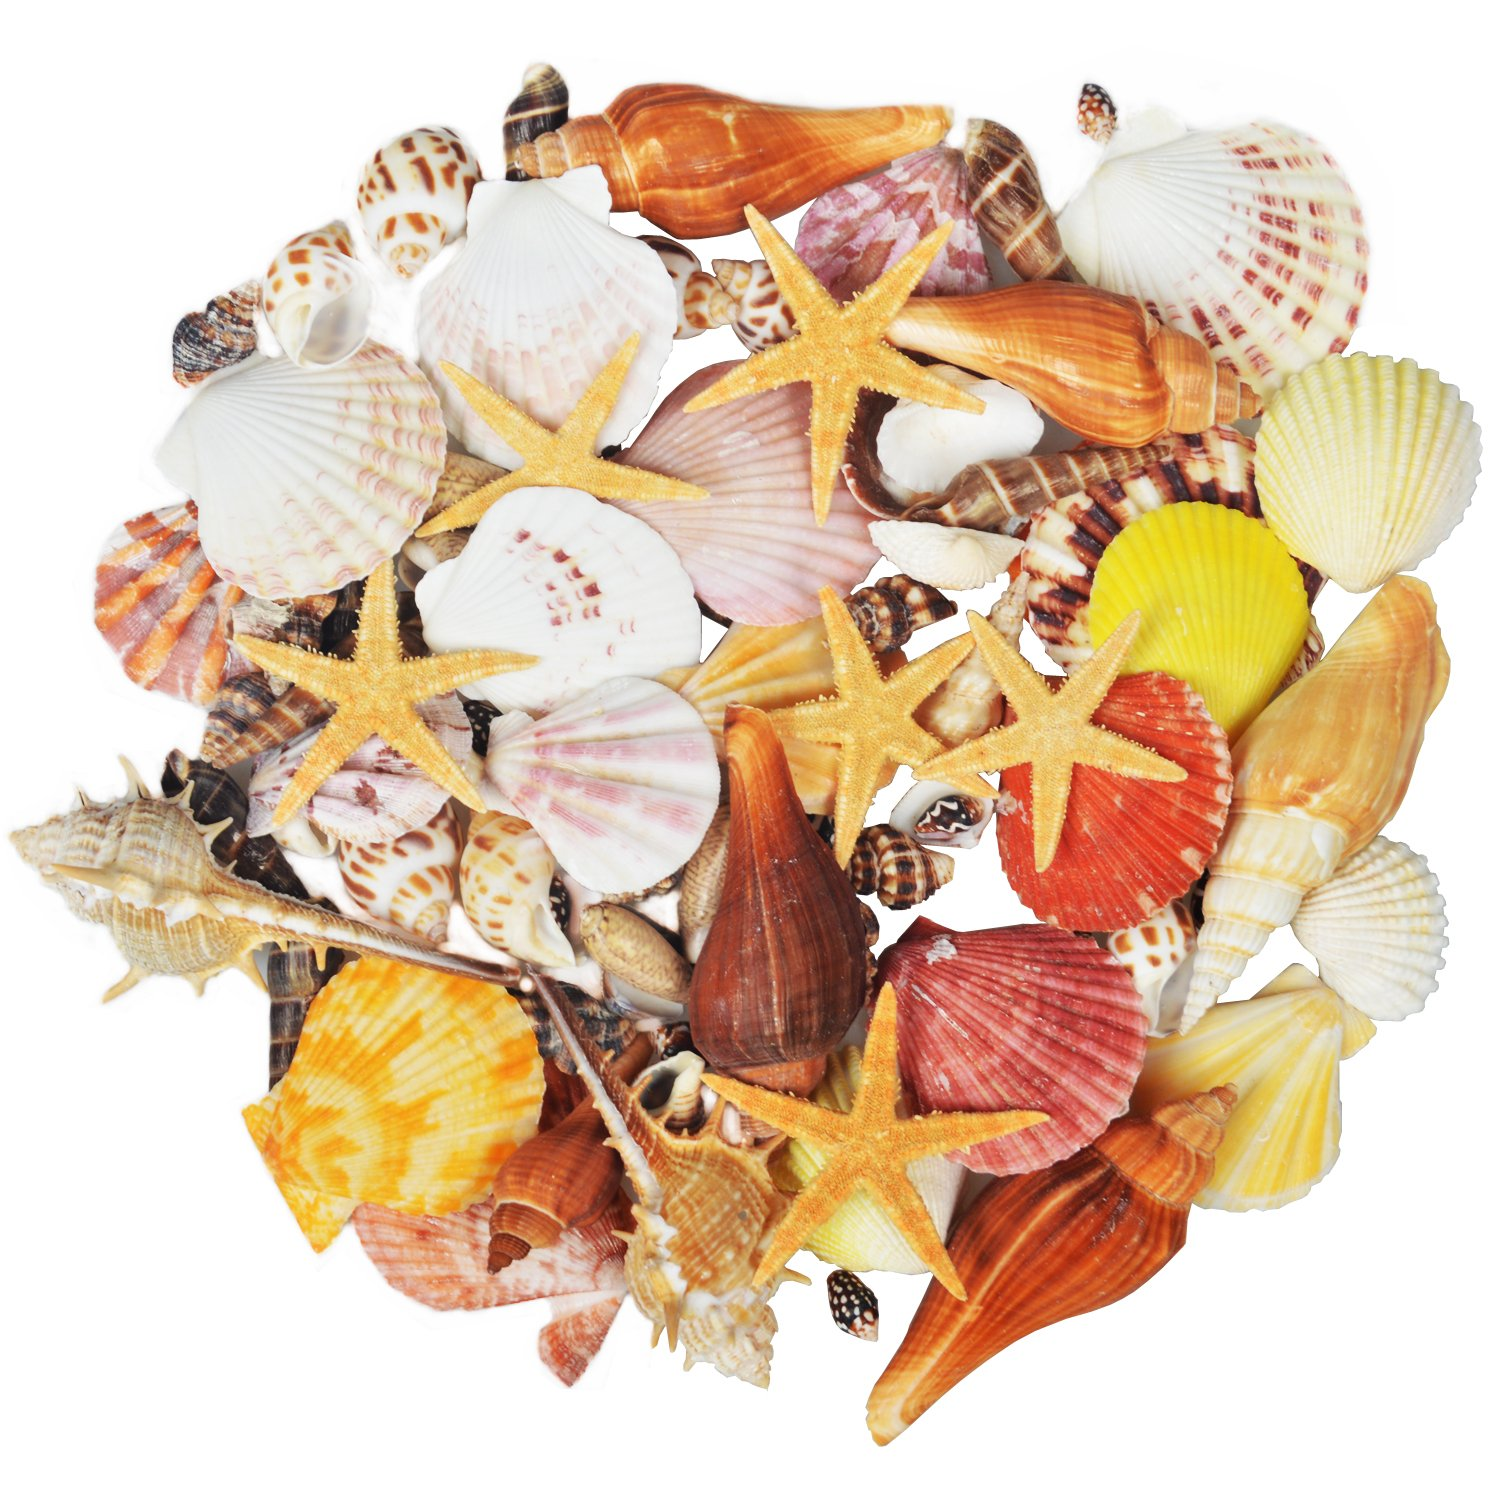 100PCS Sea Shells Mixed Ocean Beach Seashells-Natural Colorful Seashells Starfish Perfect for Vase Fillers,Wedding Decor Beach Theme Party , Home Decorations,DIY Crafts, Fish Tank,Candle Making Jangostor